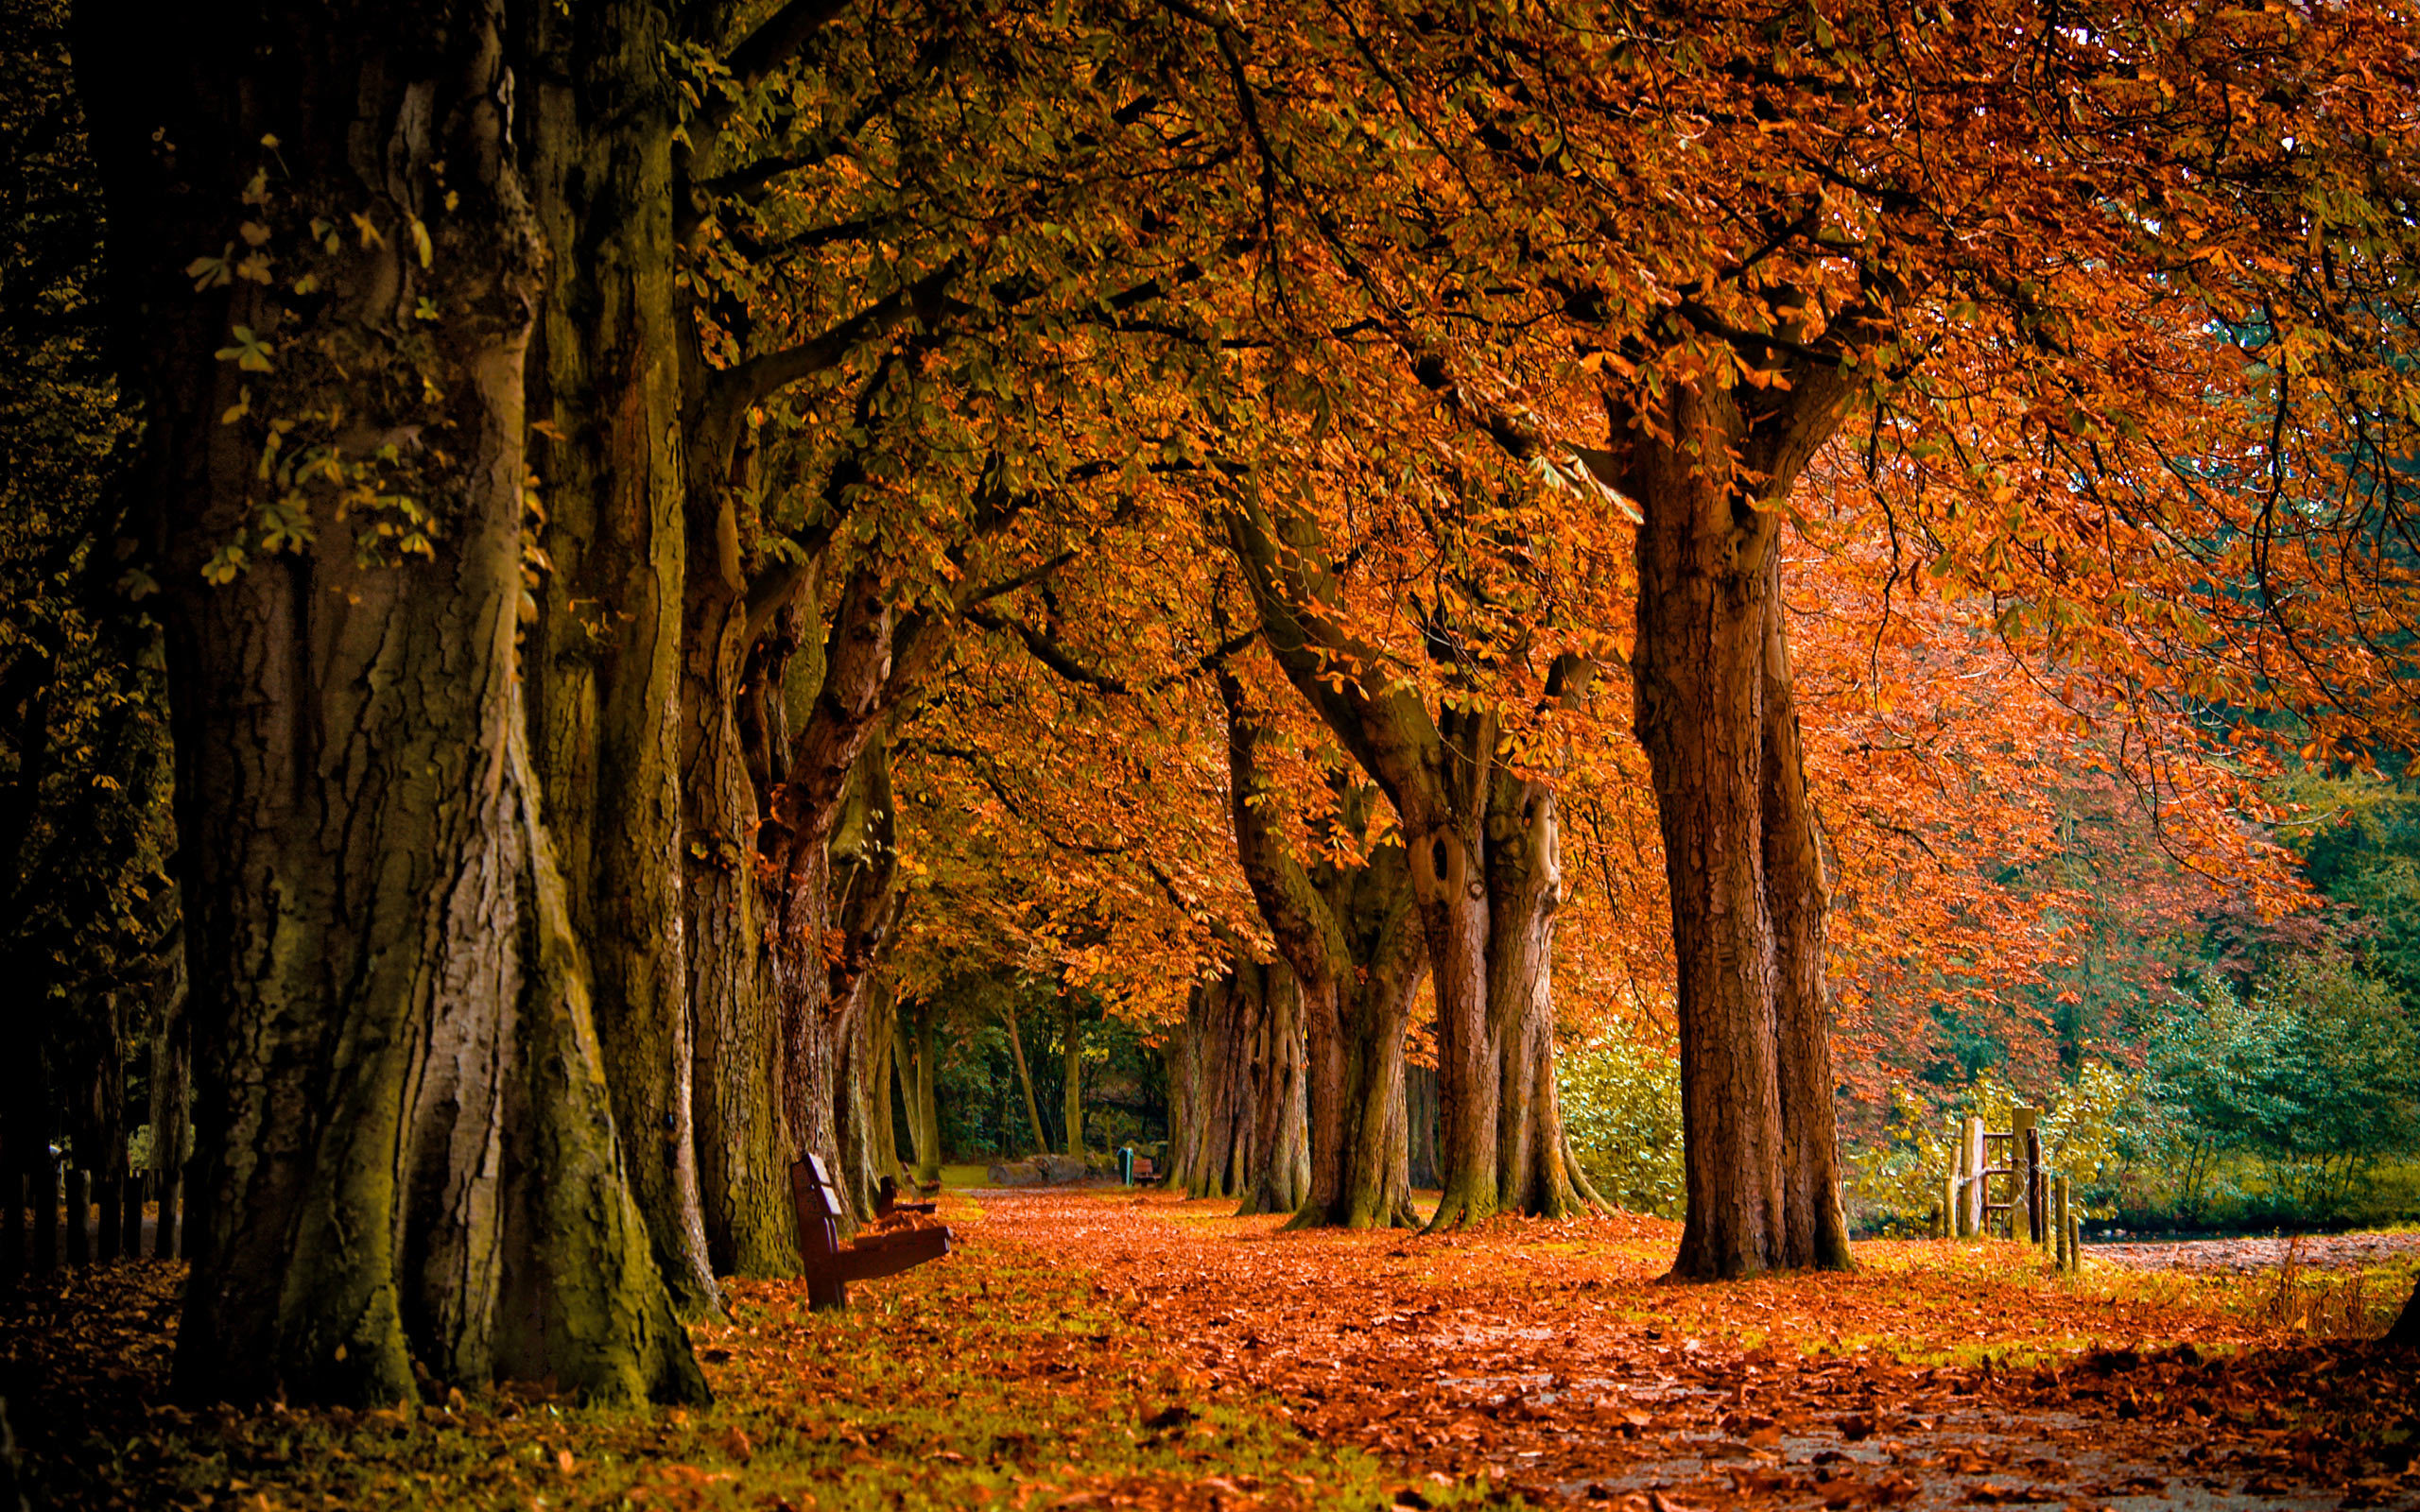 fall path a· leaves a· pumpkins a· autum trees nature landscape leaf leaves 2560x2048 local offer android wallpaper